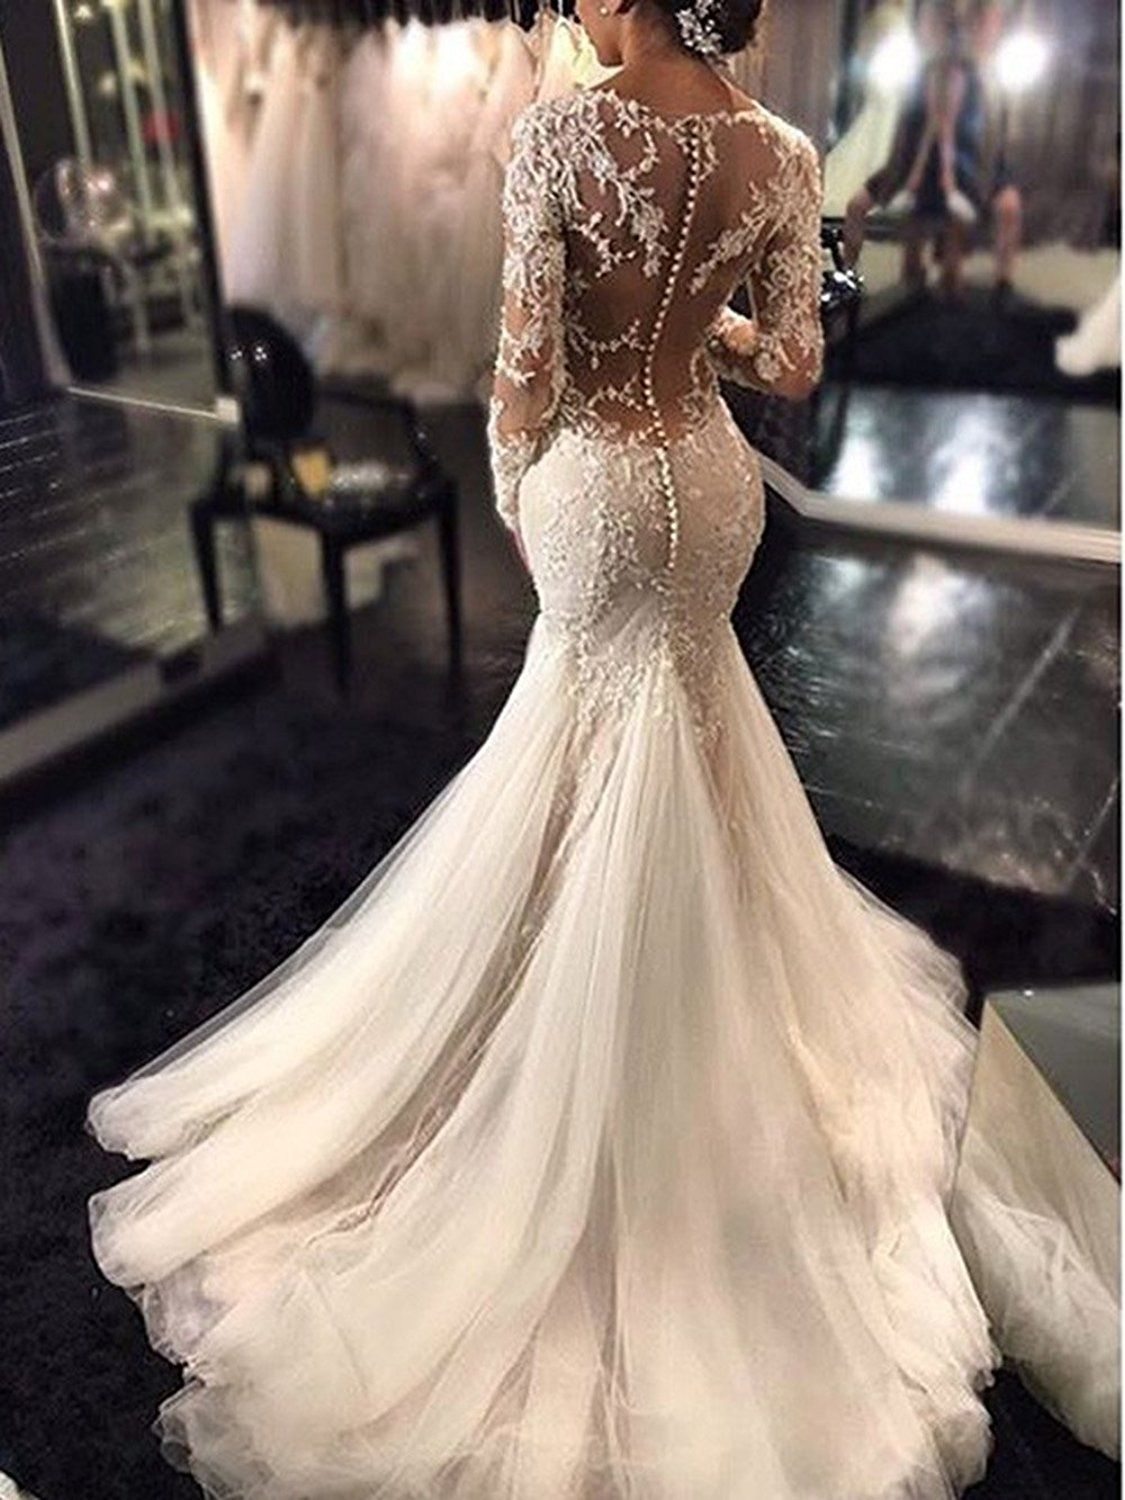 f49e6acb49  159 - Fashion bride Women s See Through Back Long Sleeve Mermaid Wedding  Dress 2018 Bridal Gowns at Amazon Women s Clothing store